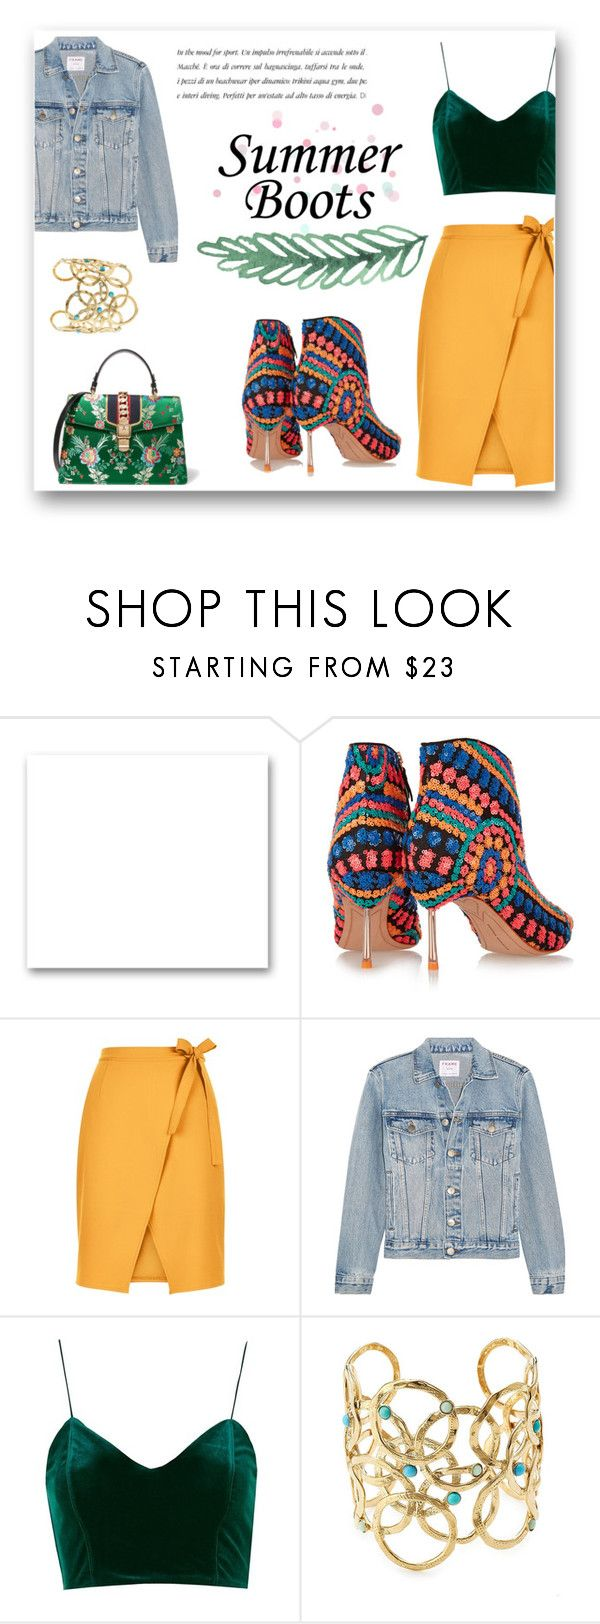 """""""Summer boots"""" by alexandra-barbu-1 ❤ liked on Polyvore featuring St. John, Sophia Webster, New Look, Frame, Topshop, Gas Bijoux and Gucci"""